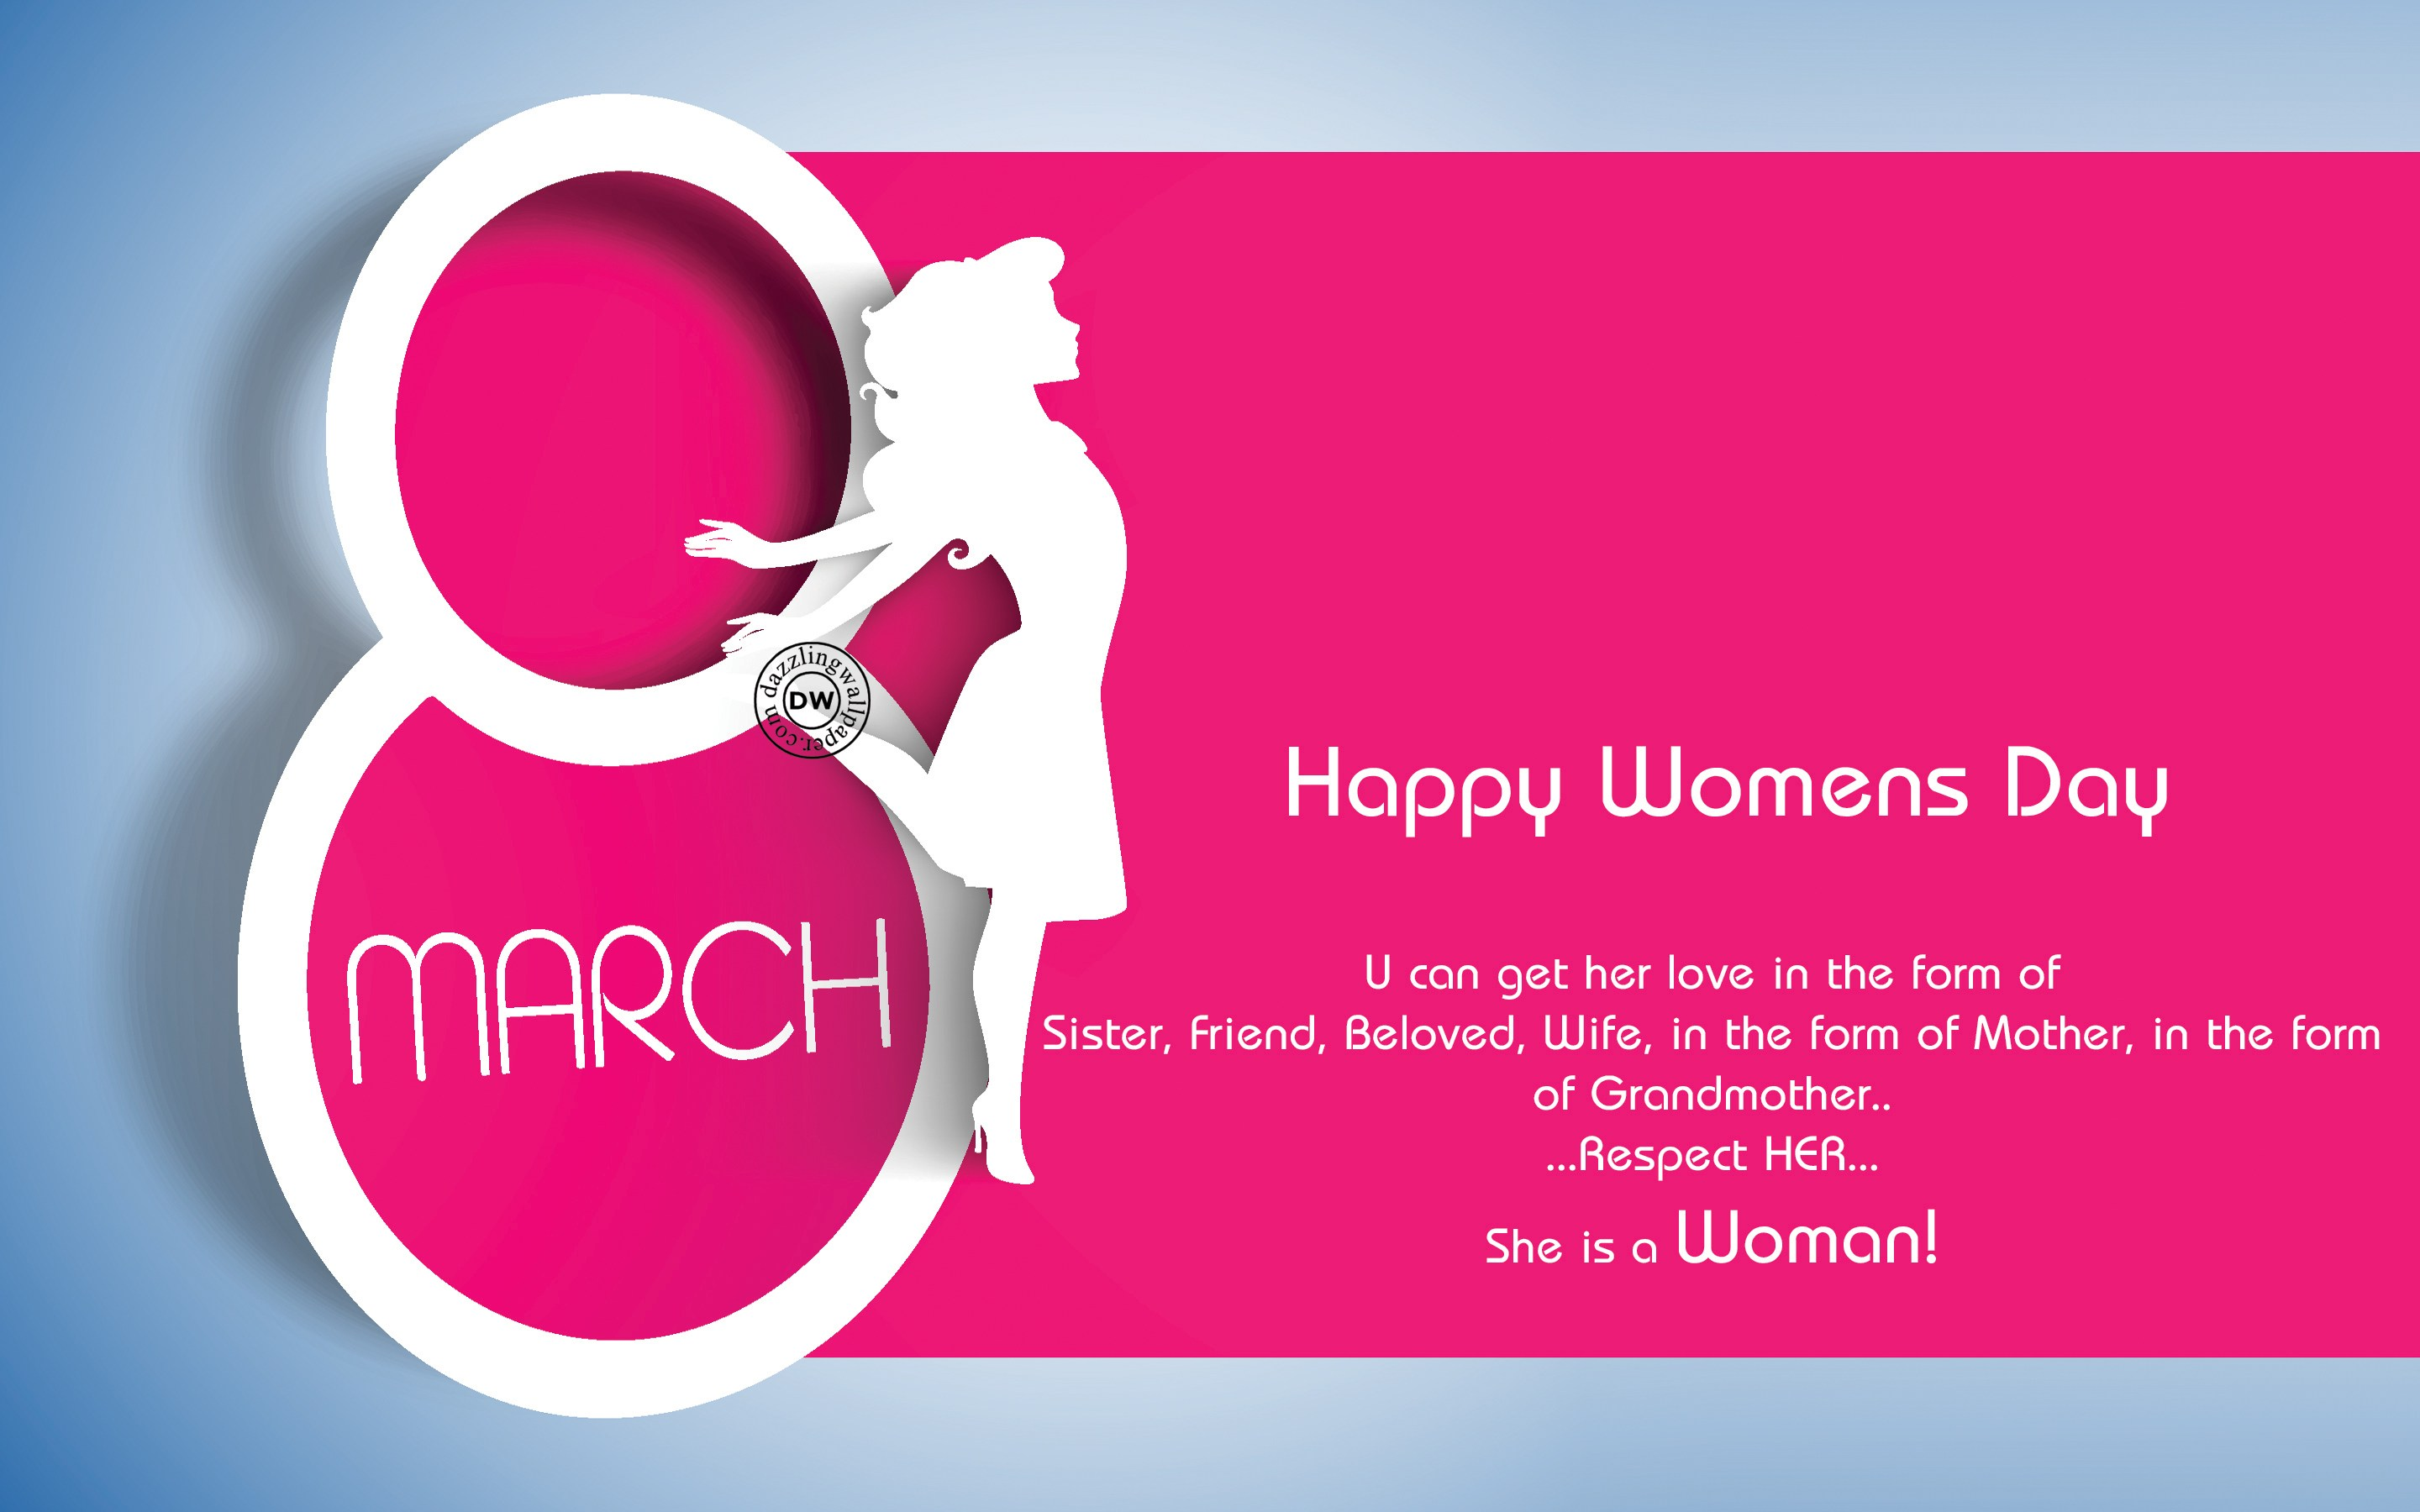 @namrata_yournextpick's cover photo for 'Women's Day in the Malls of Delhi NCR'